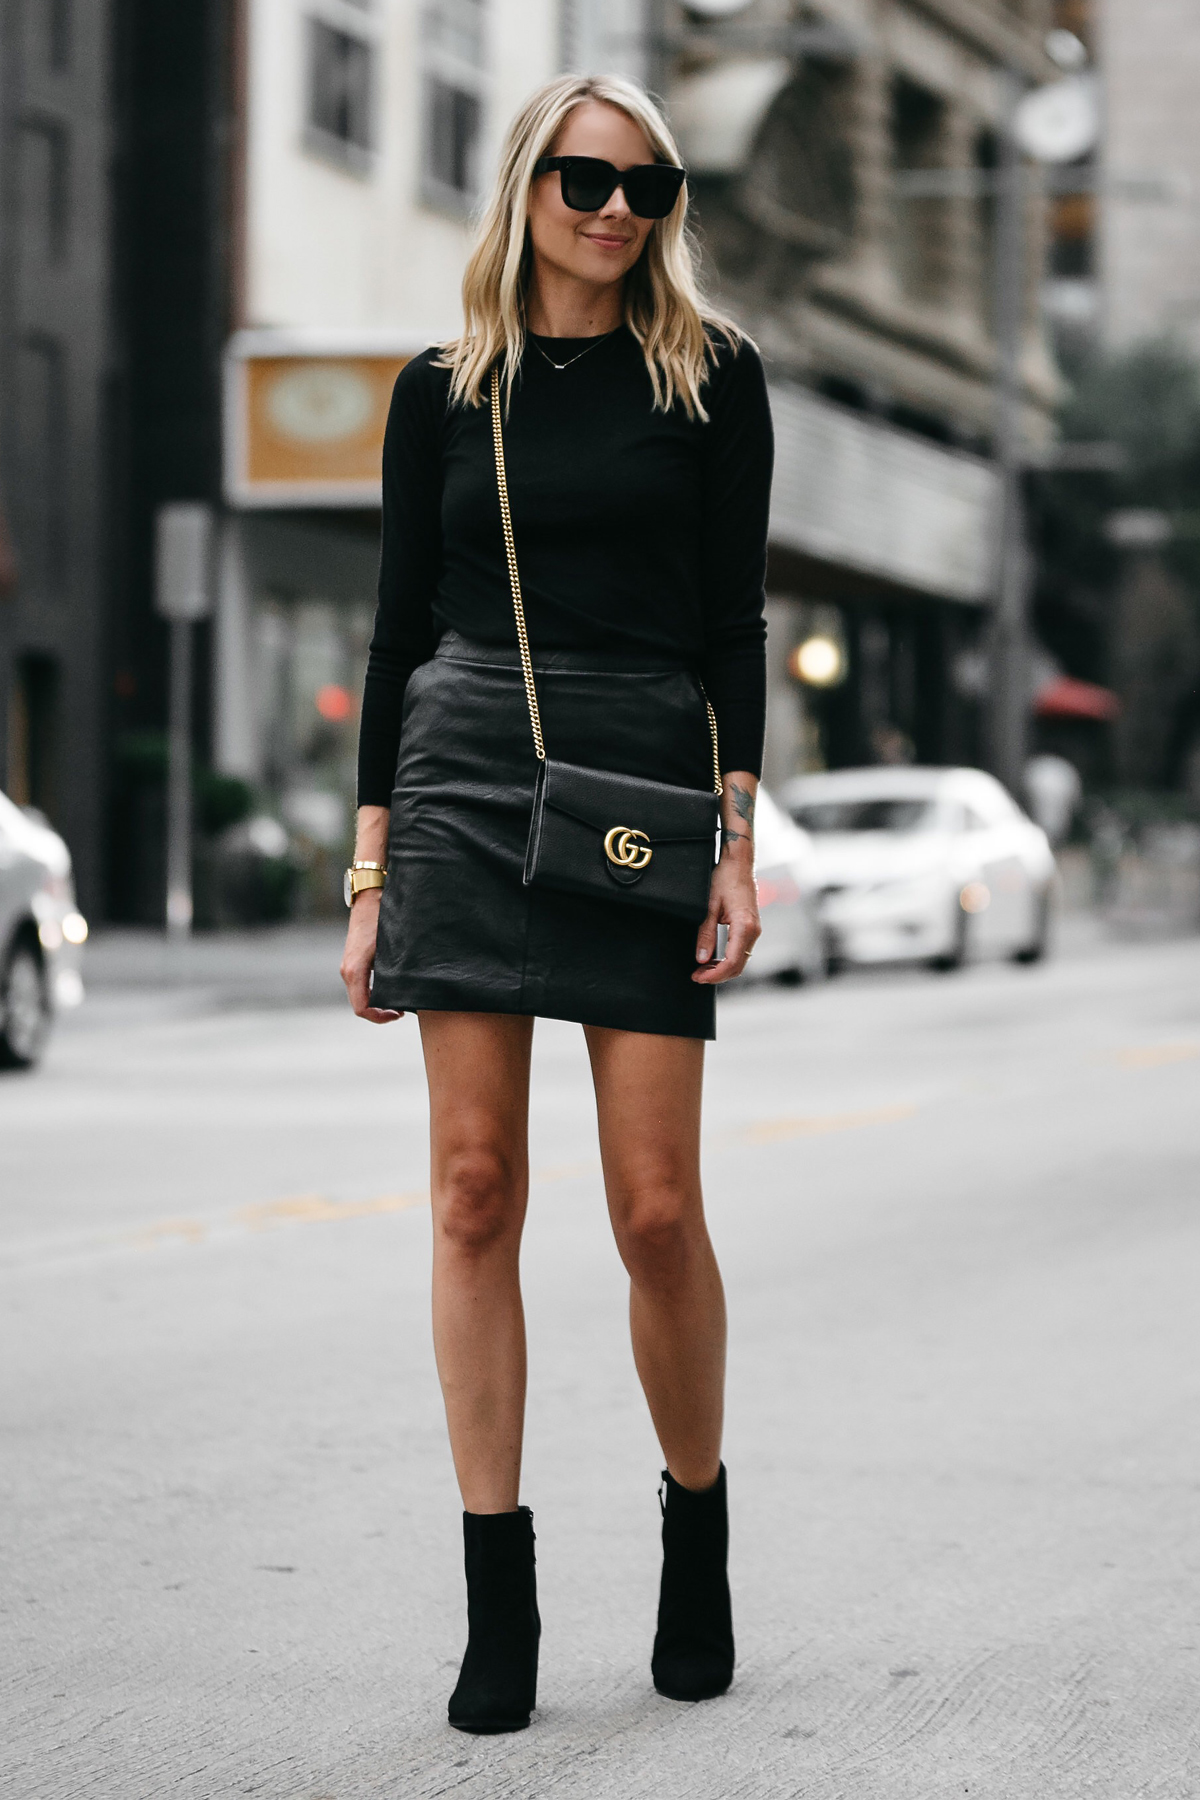 e22b6e3462 A STYLISH WAY TO WEAR A BLACK LEATHER MINI SKIRT | Fashion Jackson